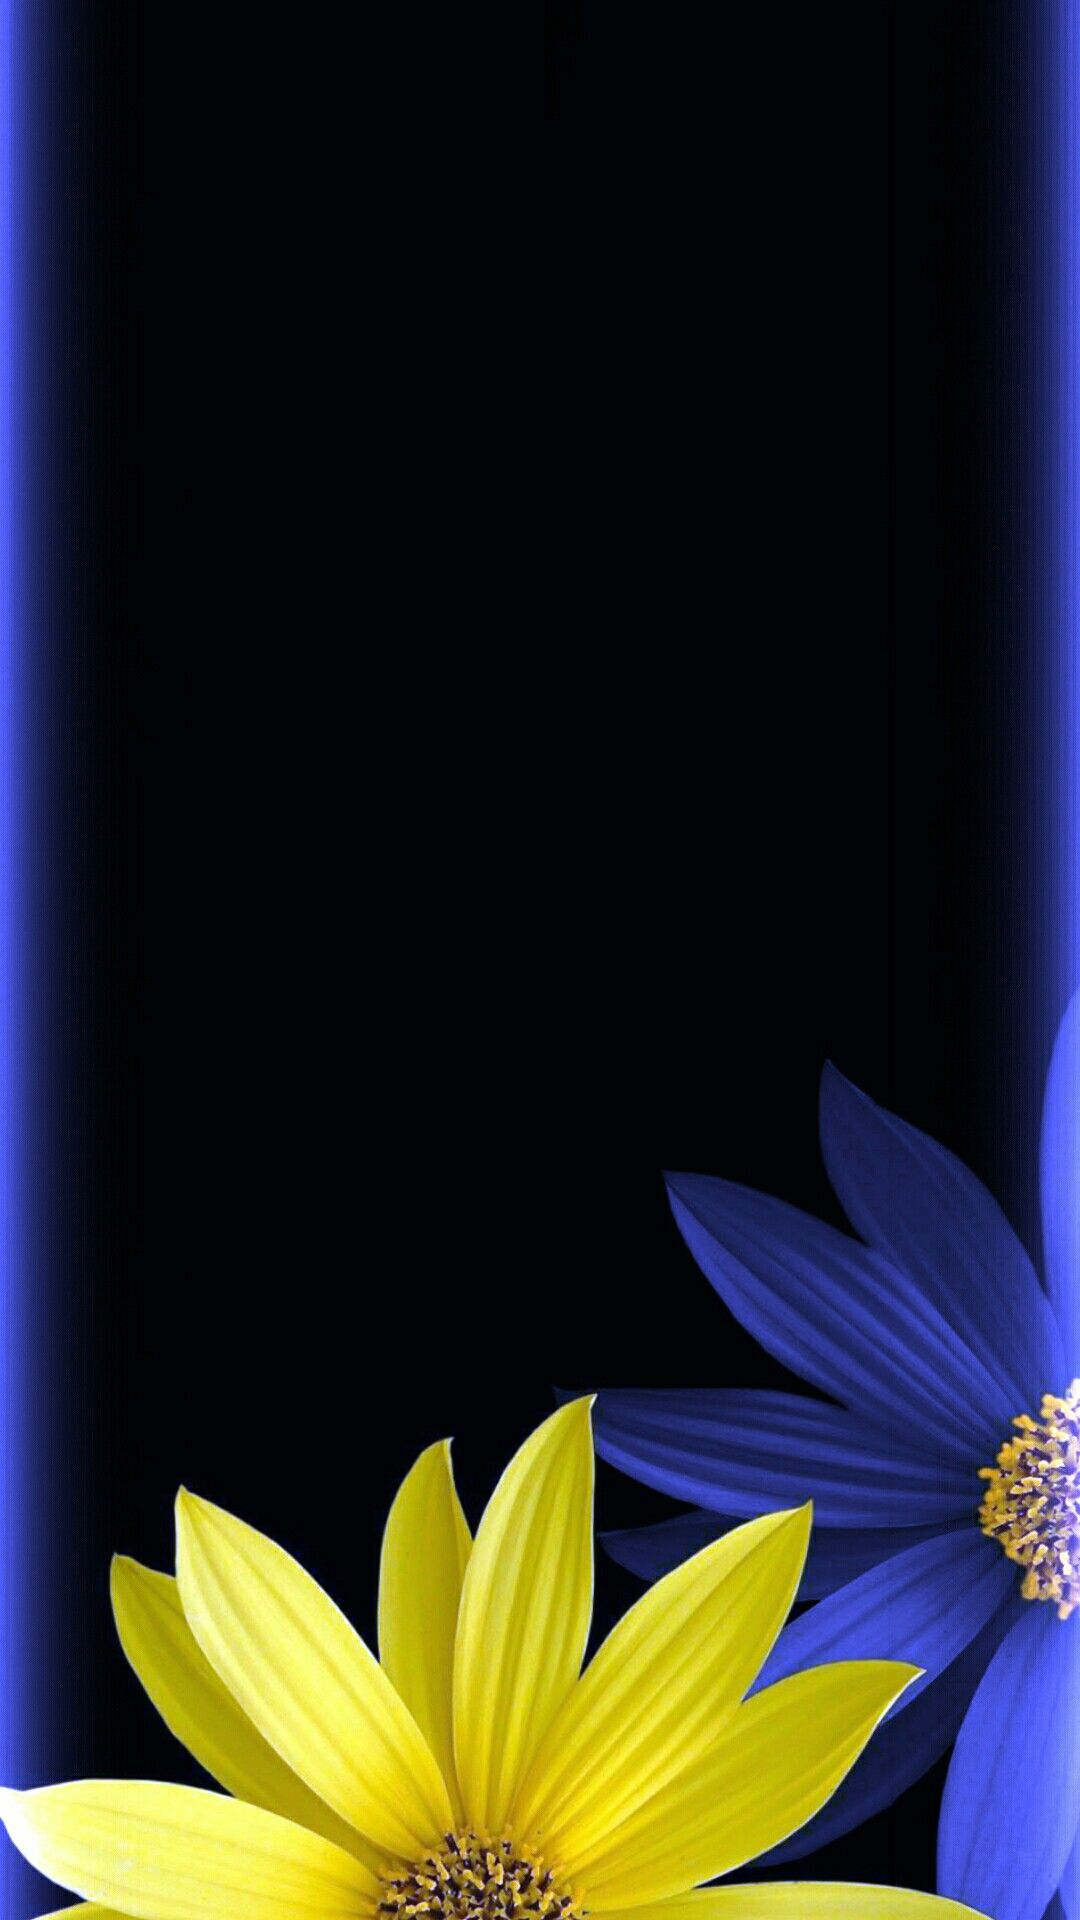 Blue Yellow Black Floral Wallpaper Black Floral Wallpaper